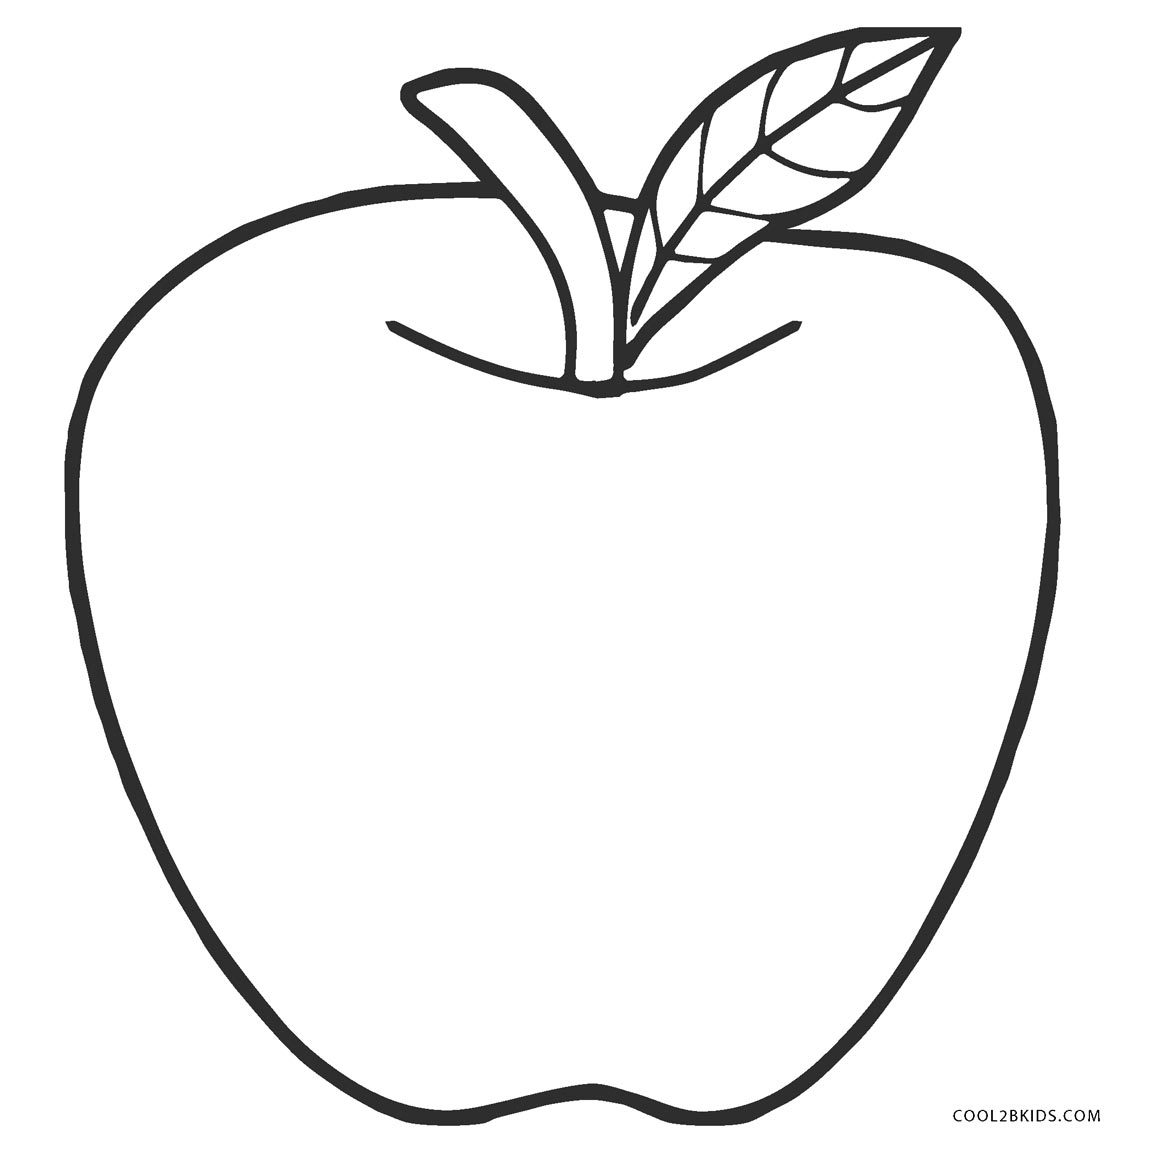 colouring images of apple free printable apple coloring pages for kids cool2bkids colouring images apple of